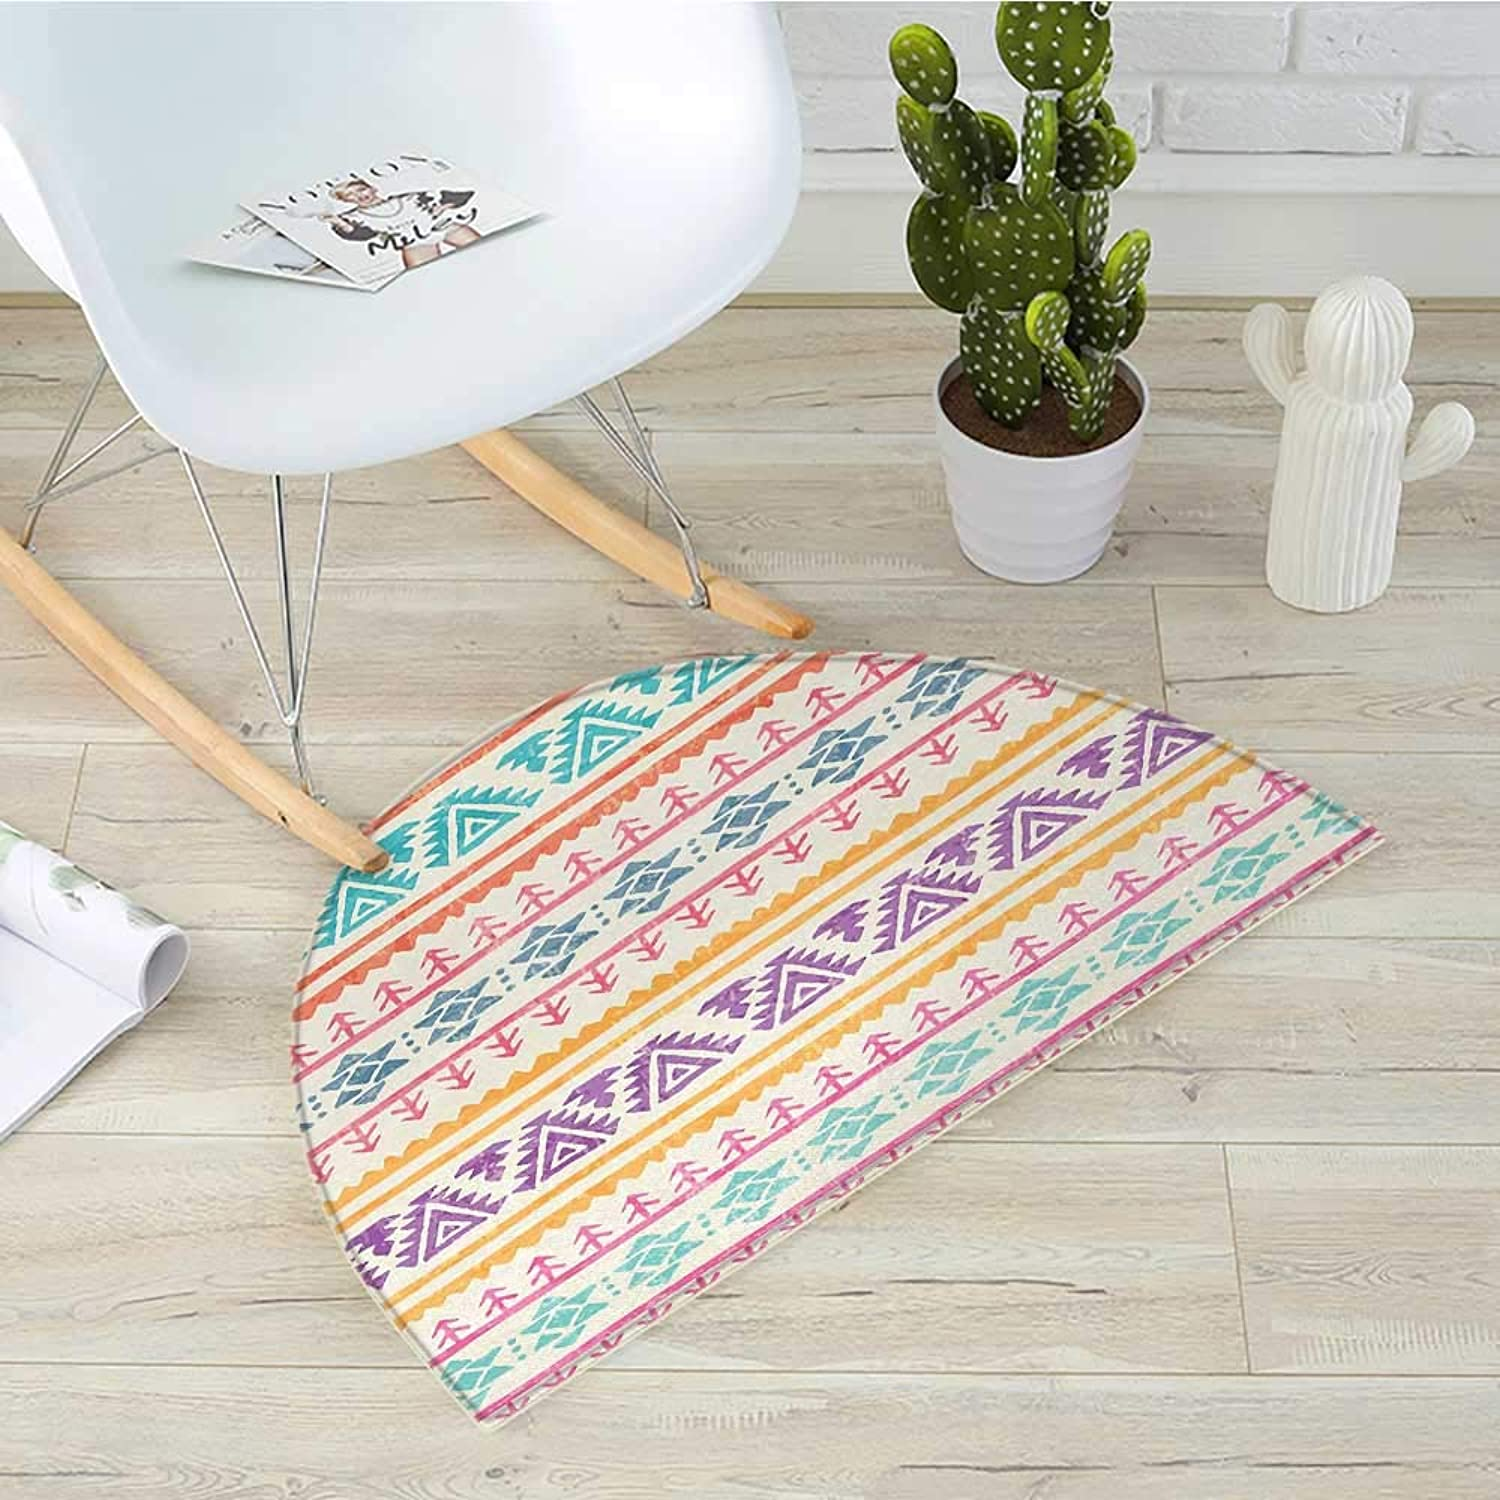 orange and Pink Semicircular CushionHand Drawn Ethnic Design with Timeless Tribal Triangle and Arrow Motifs Entry Door Mat H 35.4  xD 53.1  Multicolor